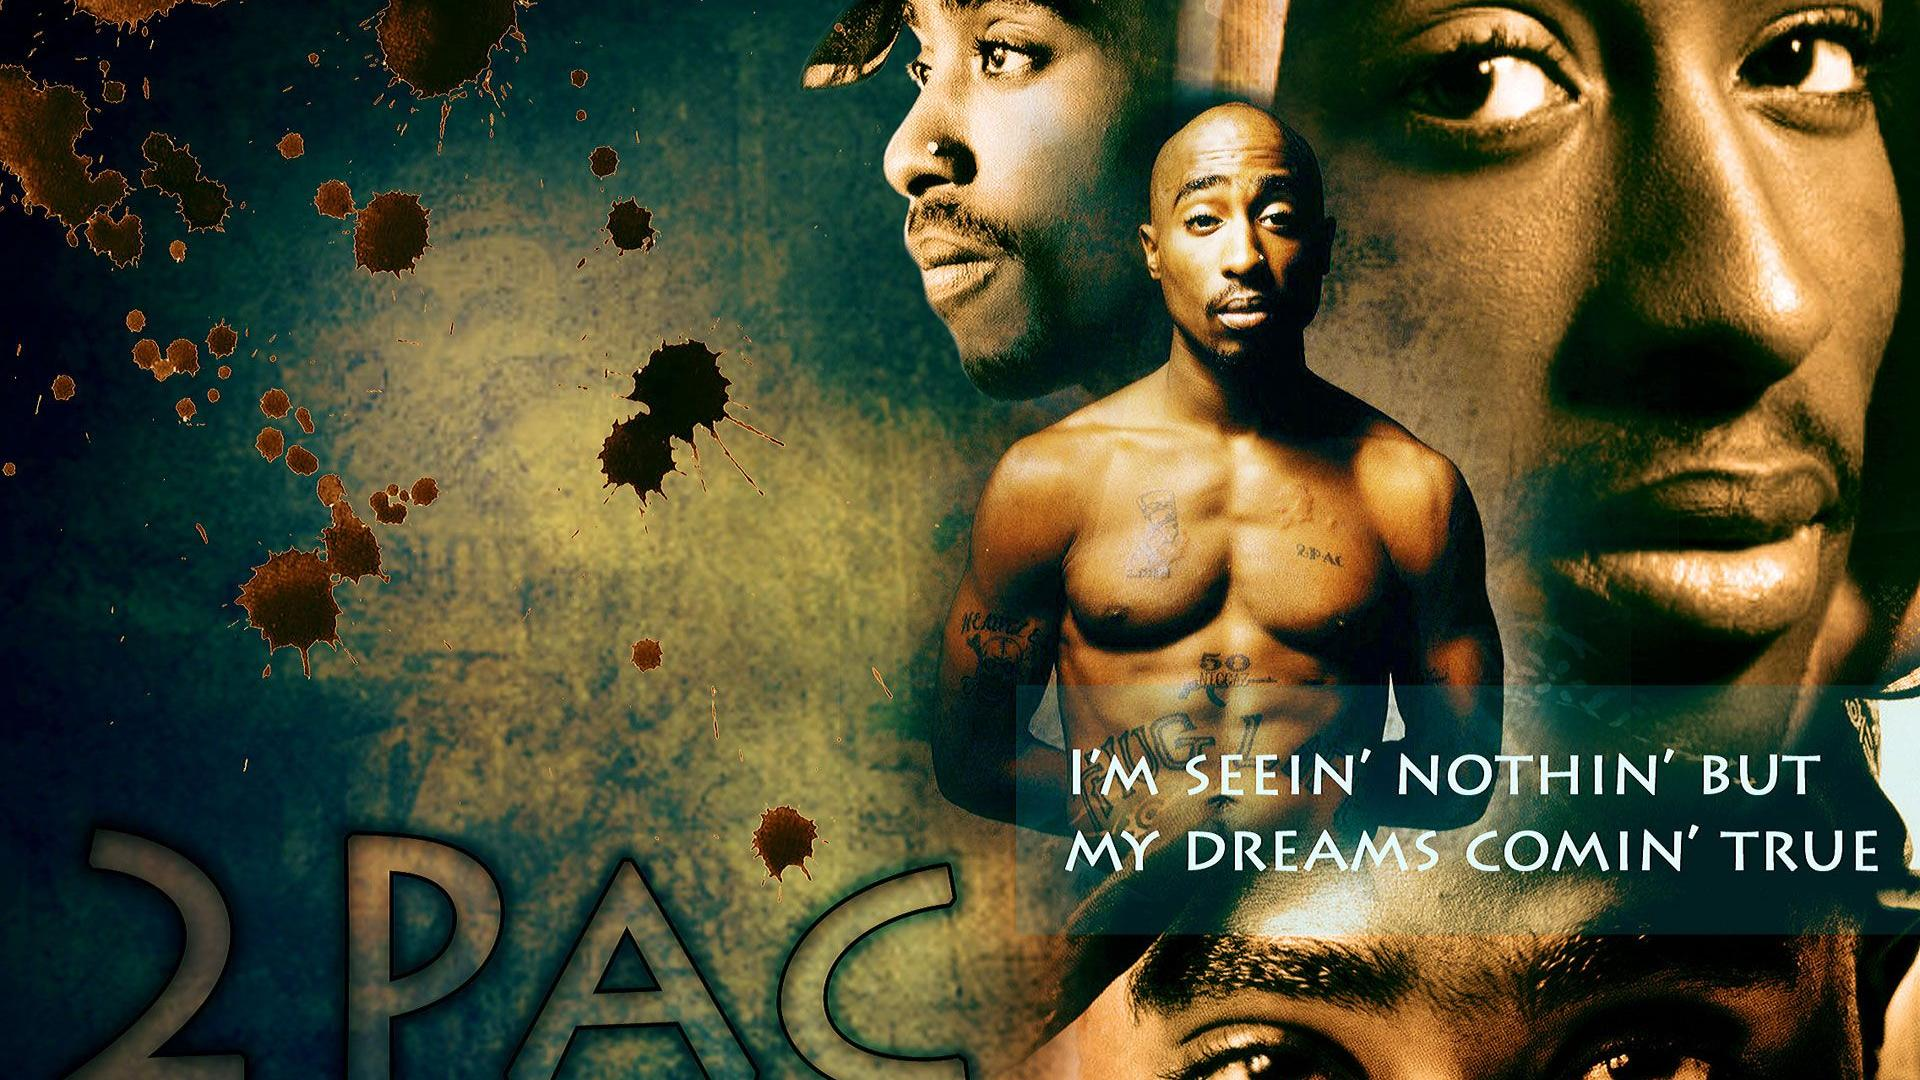 Inspirational Quotes Wallpaper Rapper Free 2pac Wallpapers Download Pixelstalk Net